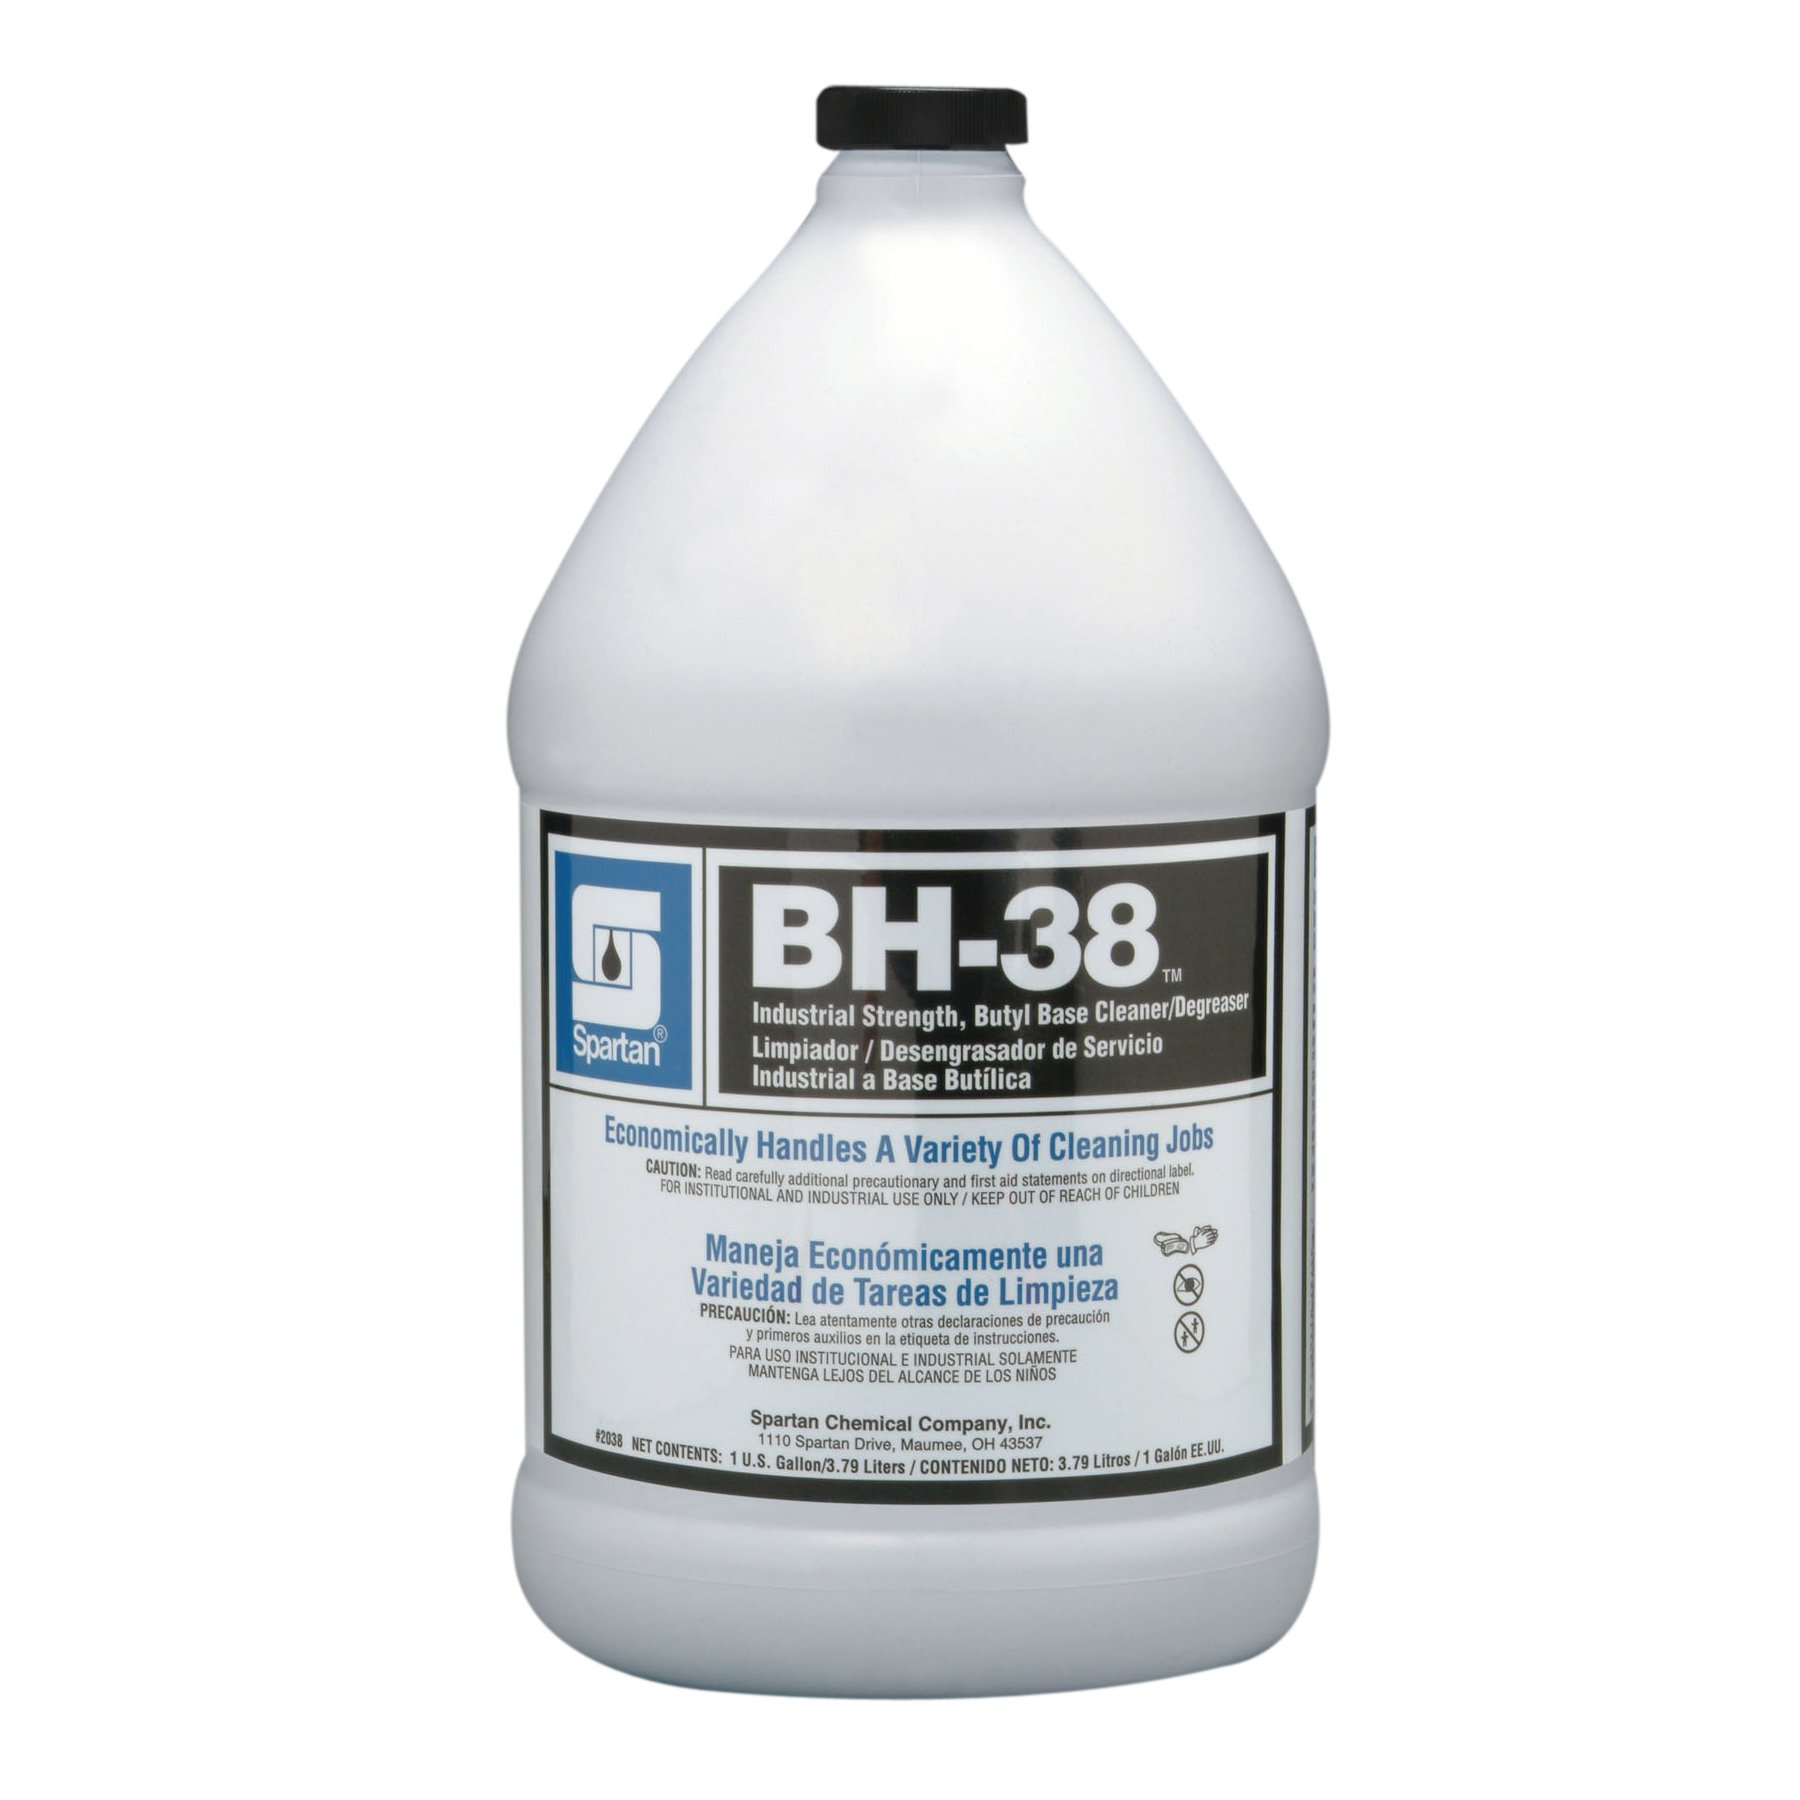 Spartan BH-38 Industrial Cleaner/Degreaser, Gallon, Gallons, 4 Per Case